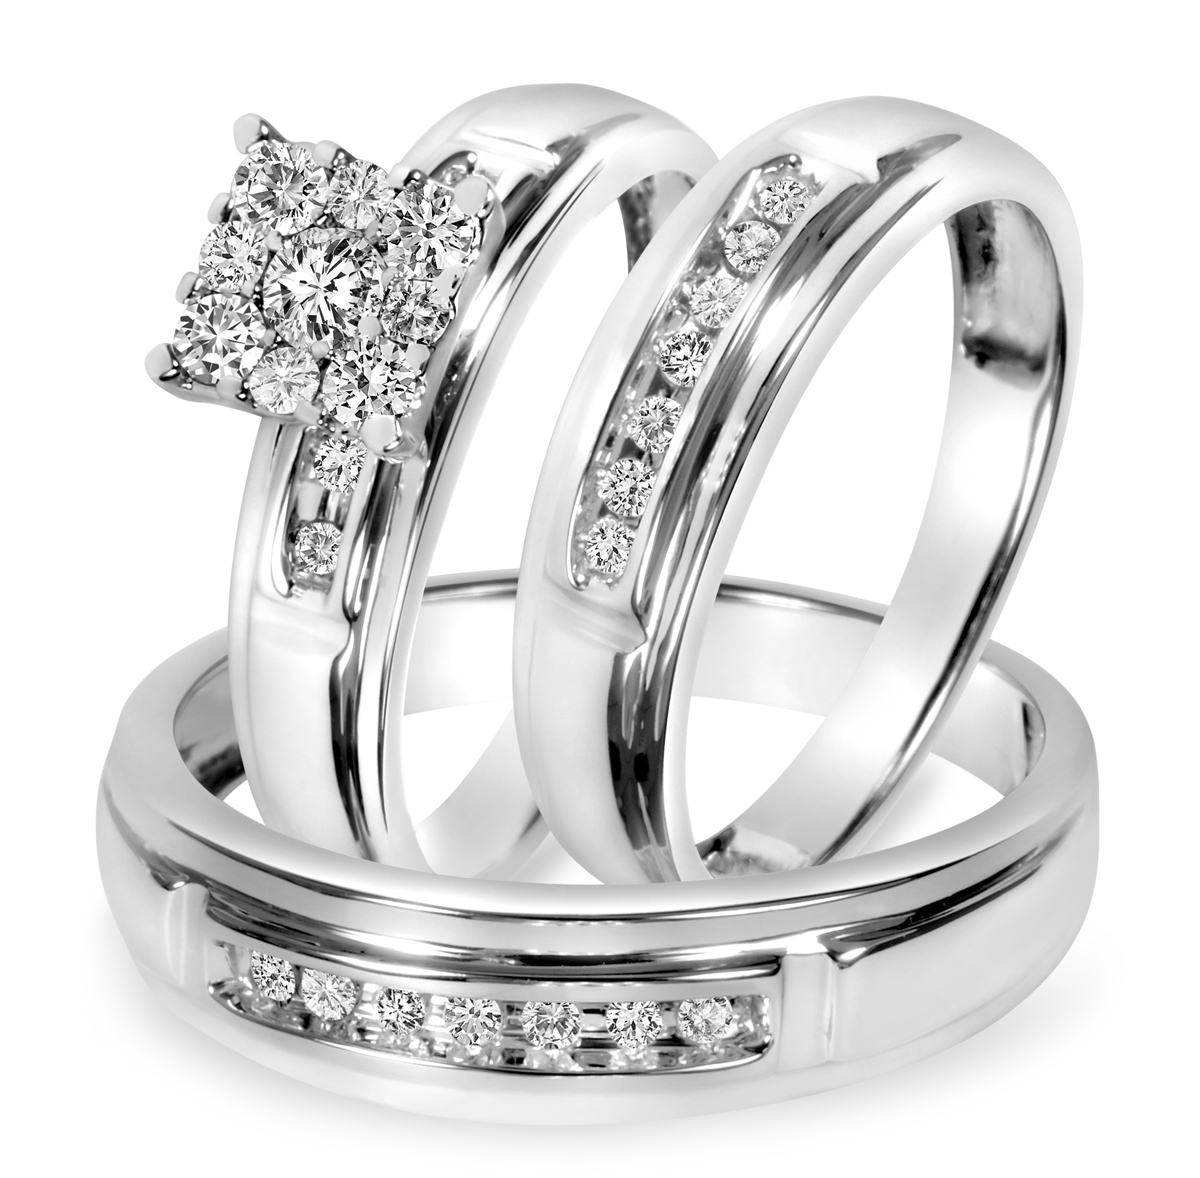 1/2 CT. T.W. Diamond Trio Matching Wedding Ring Set 14K White Gold